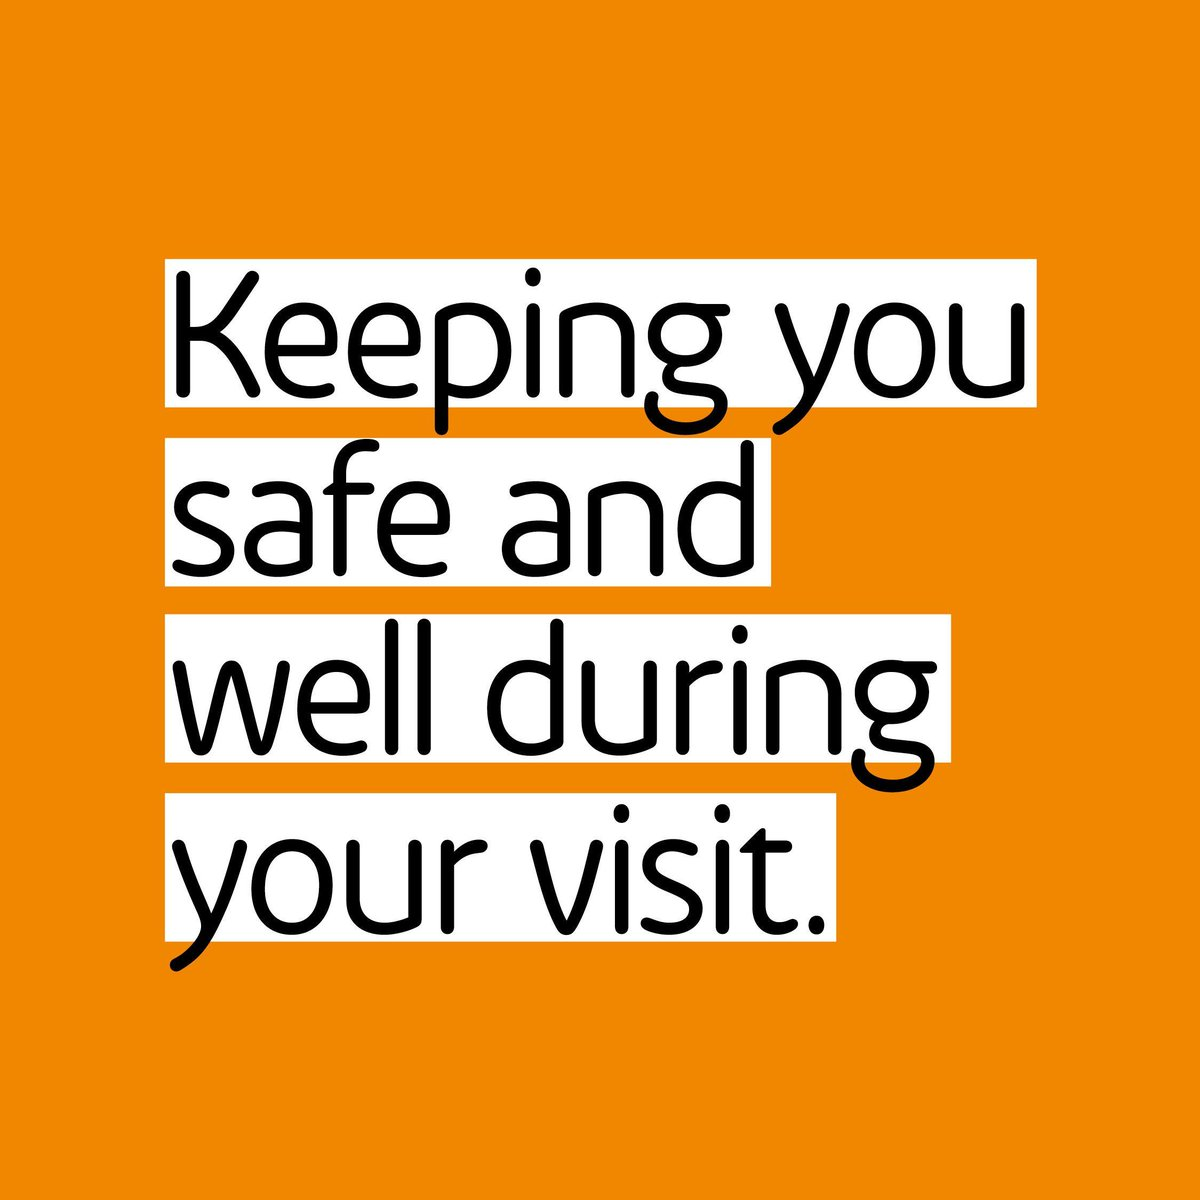 Yay 🎉 intu Derby will be open from Monday, please see here for more details and to find out what we've put in place to keep our visitors and staff safe > https://t.co/auFd4IIzMw https://t.co/MlKjfX3boi